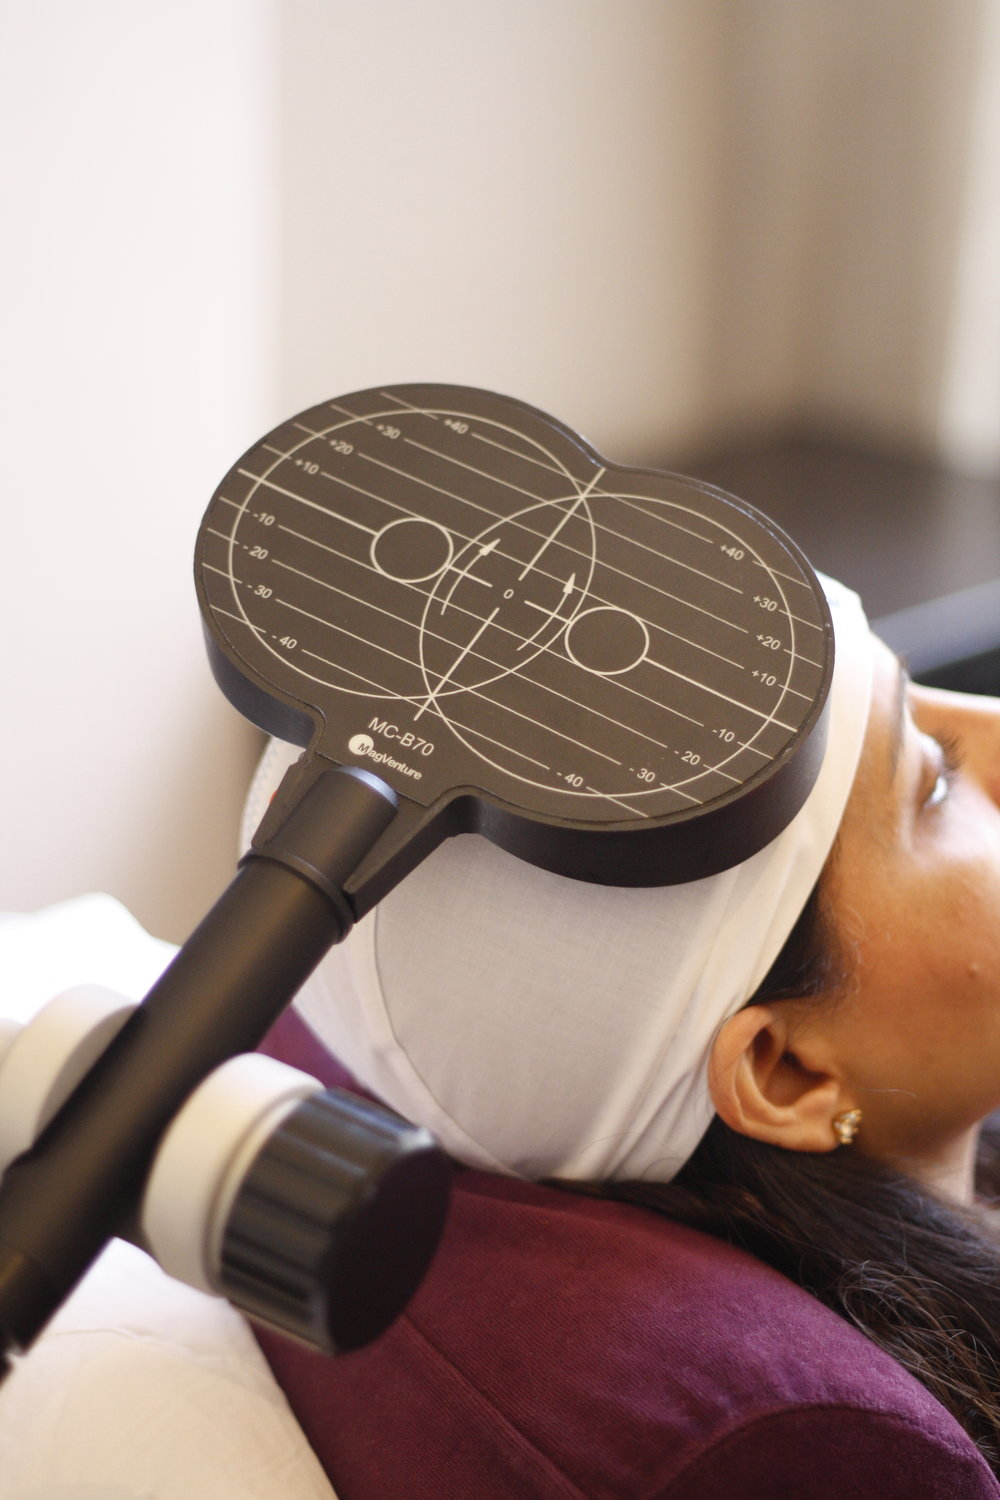 TMS Therapy does not involve surgery, anesthesia or sedation and it does not have the side effects associated with traditional antidepressants -